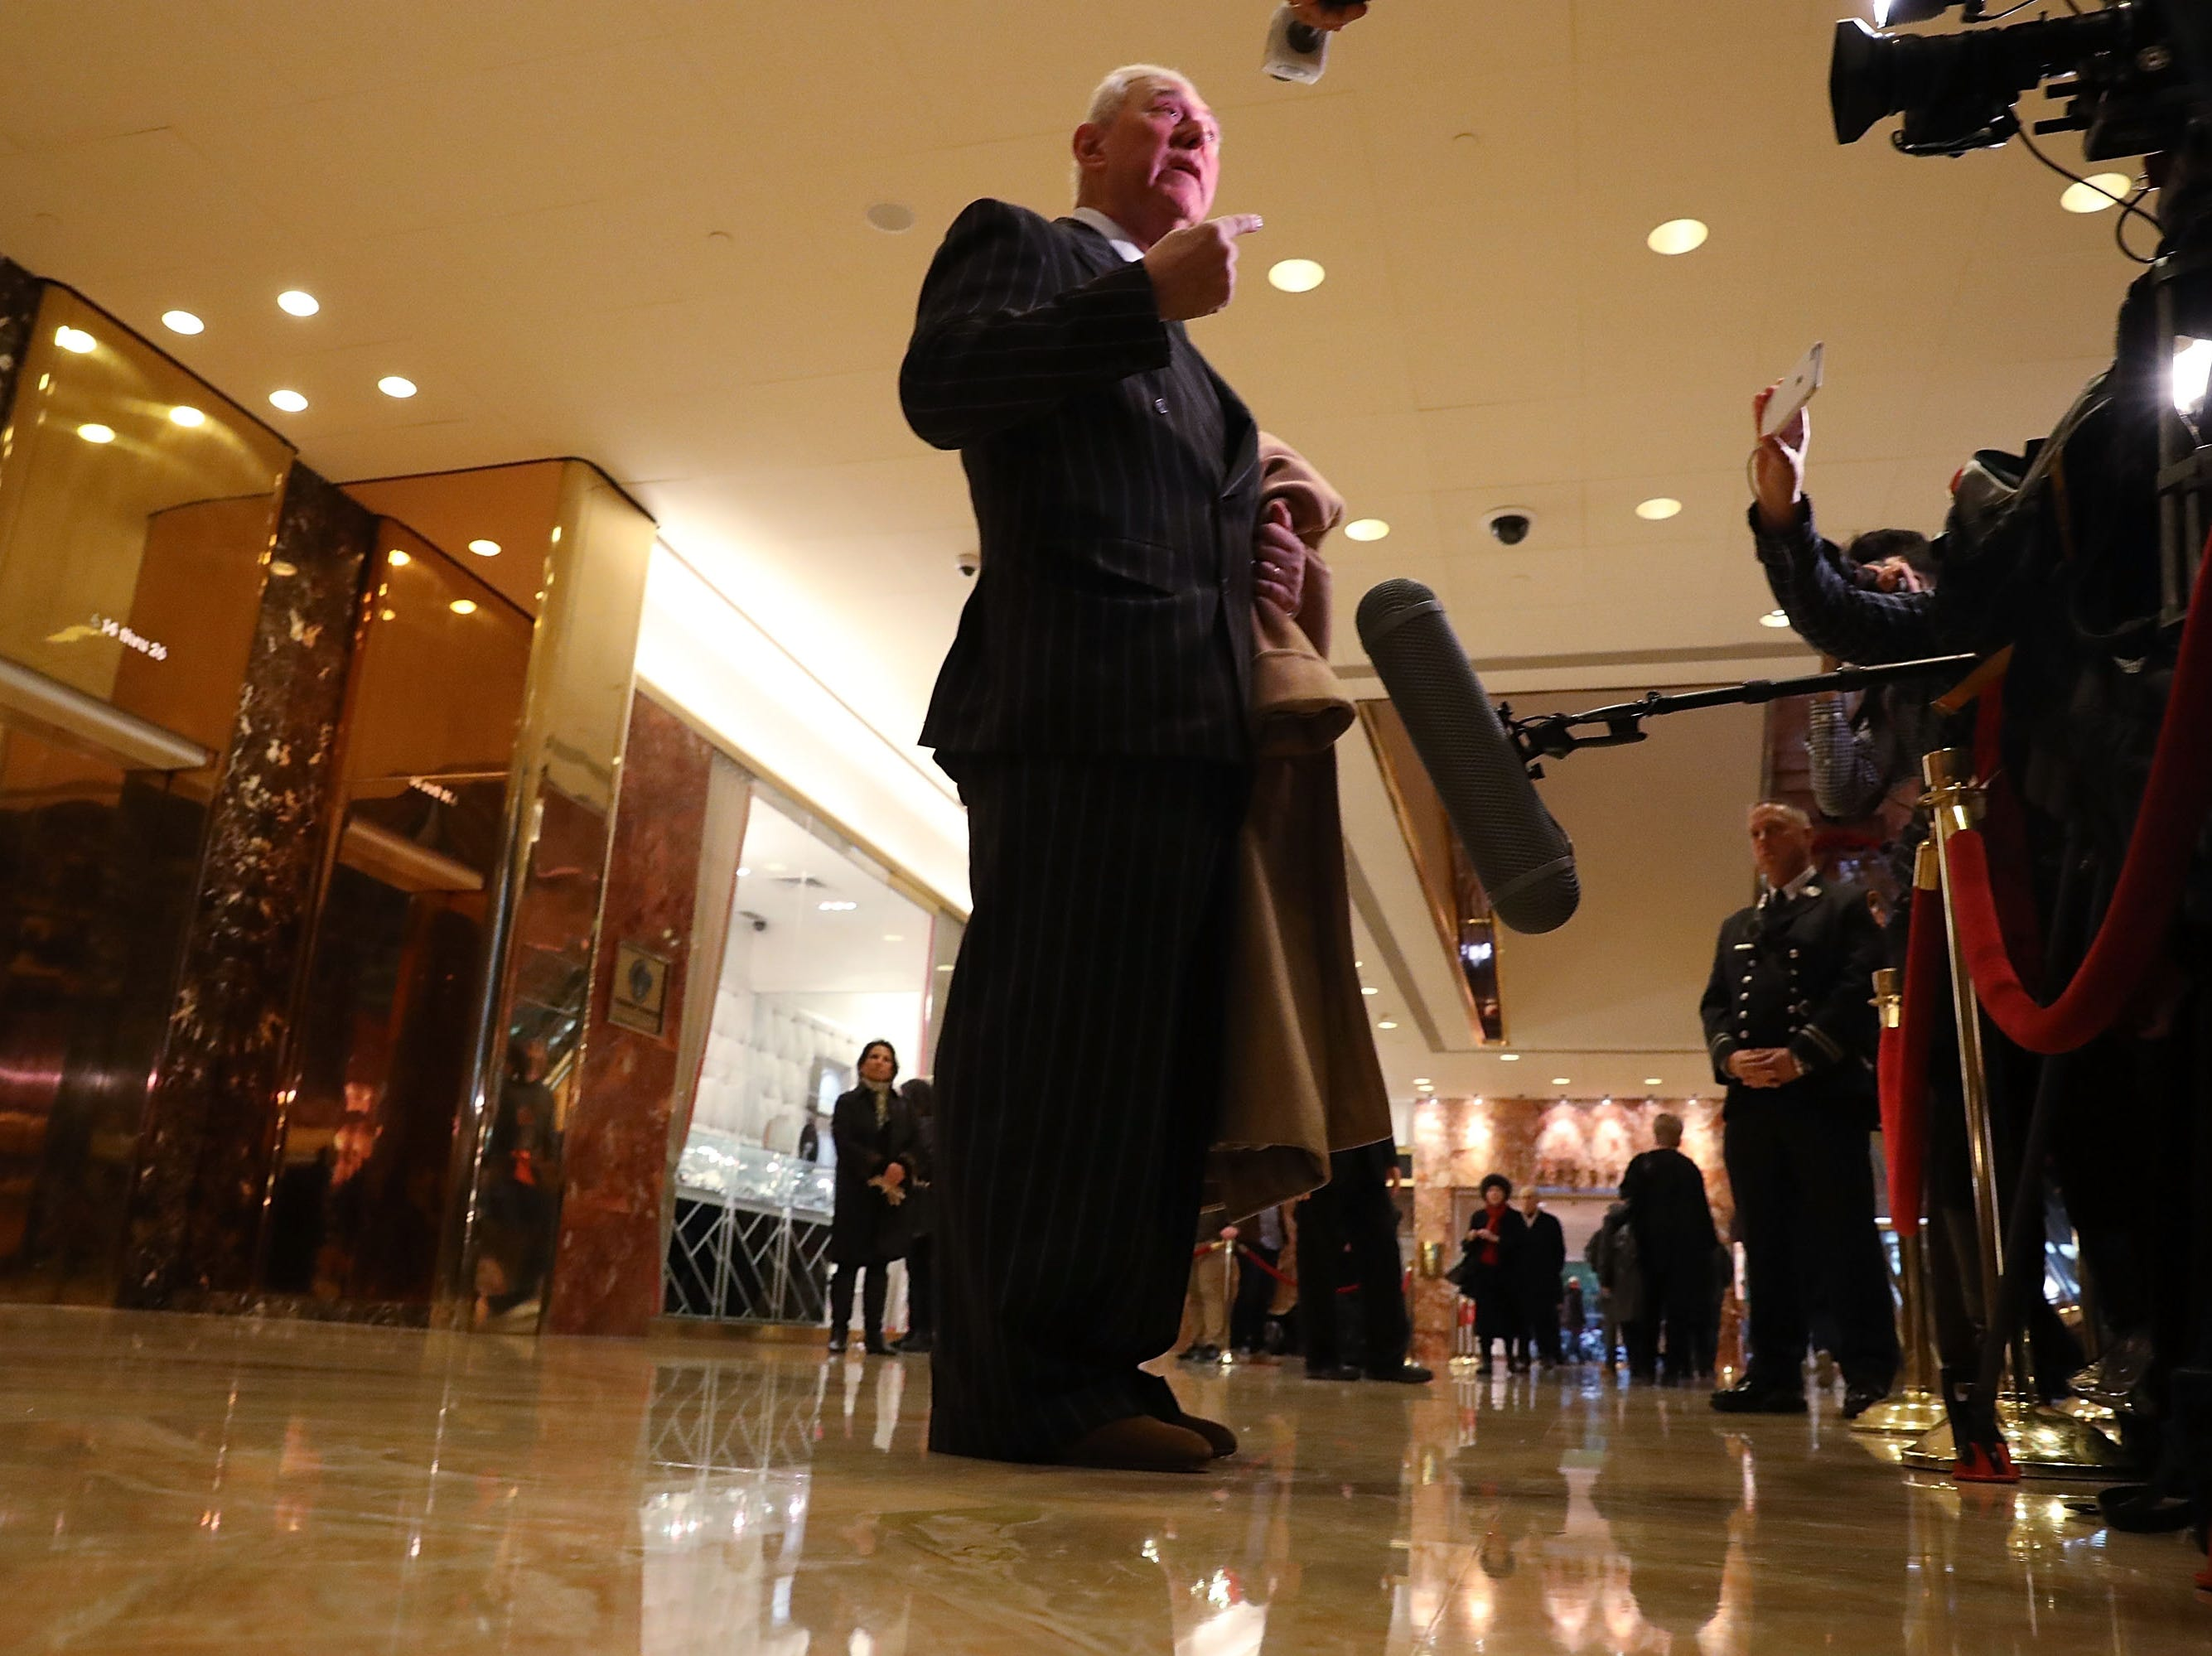 Roger Stone speaks to the media at Trump Tower on Dec. 6, 2016 in New York.